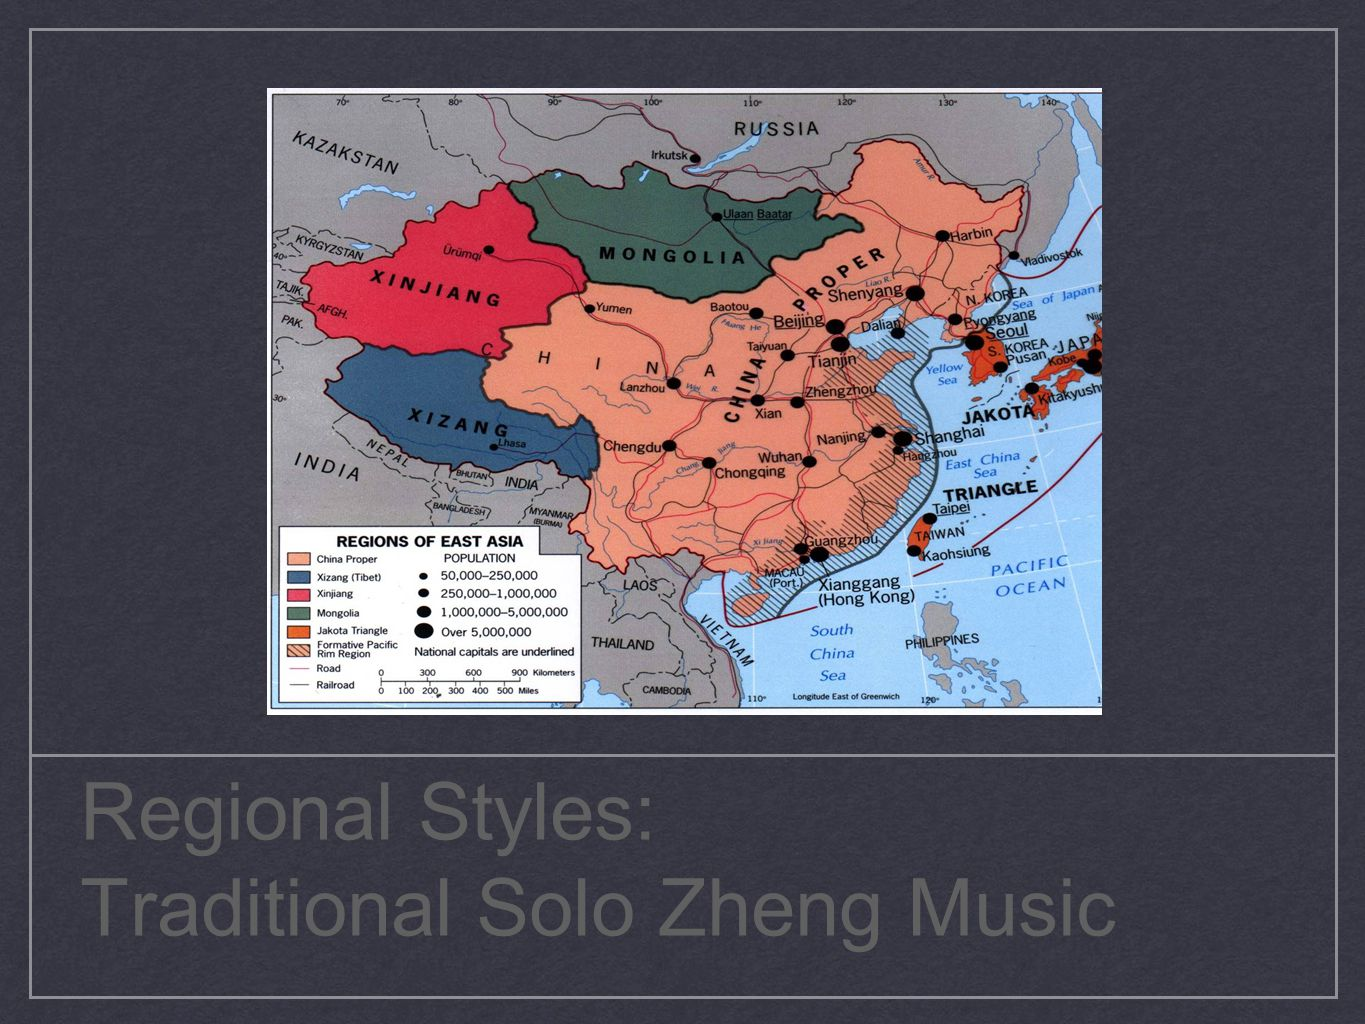 Regional Styles: Traditional Solo Zheng Music